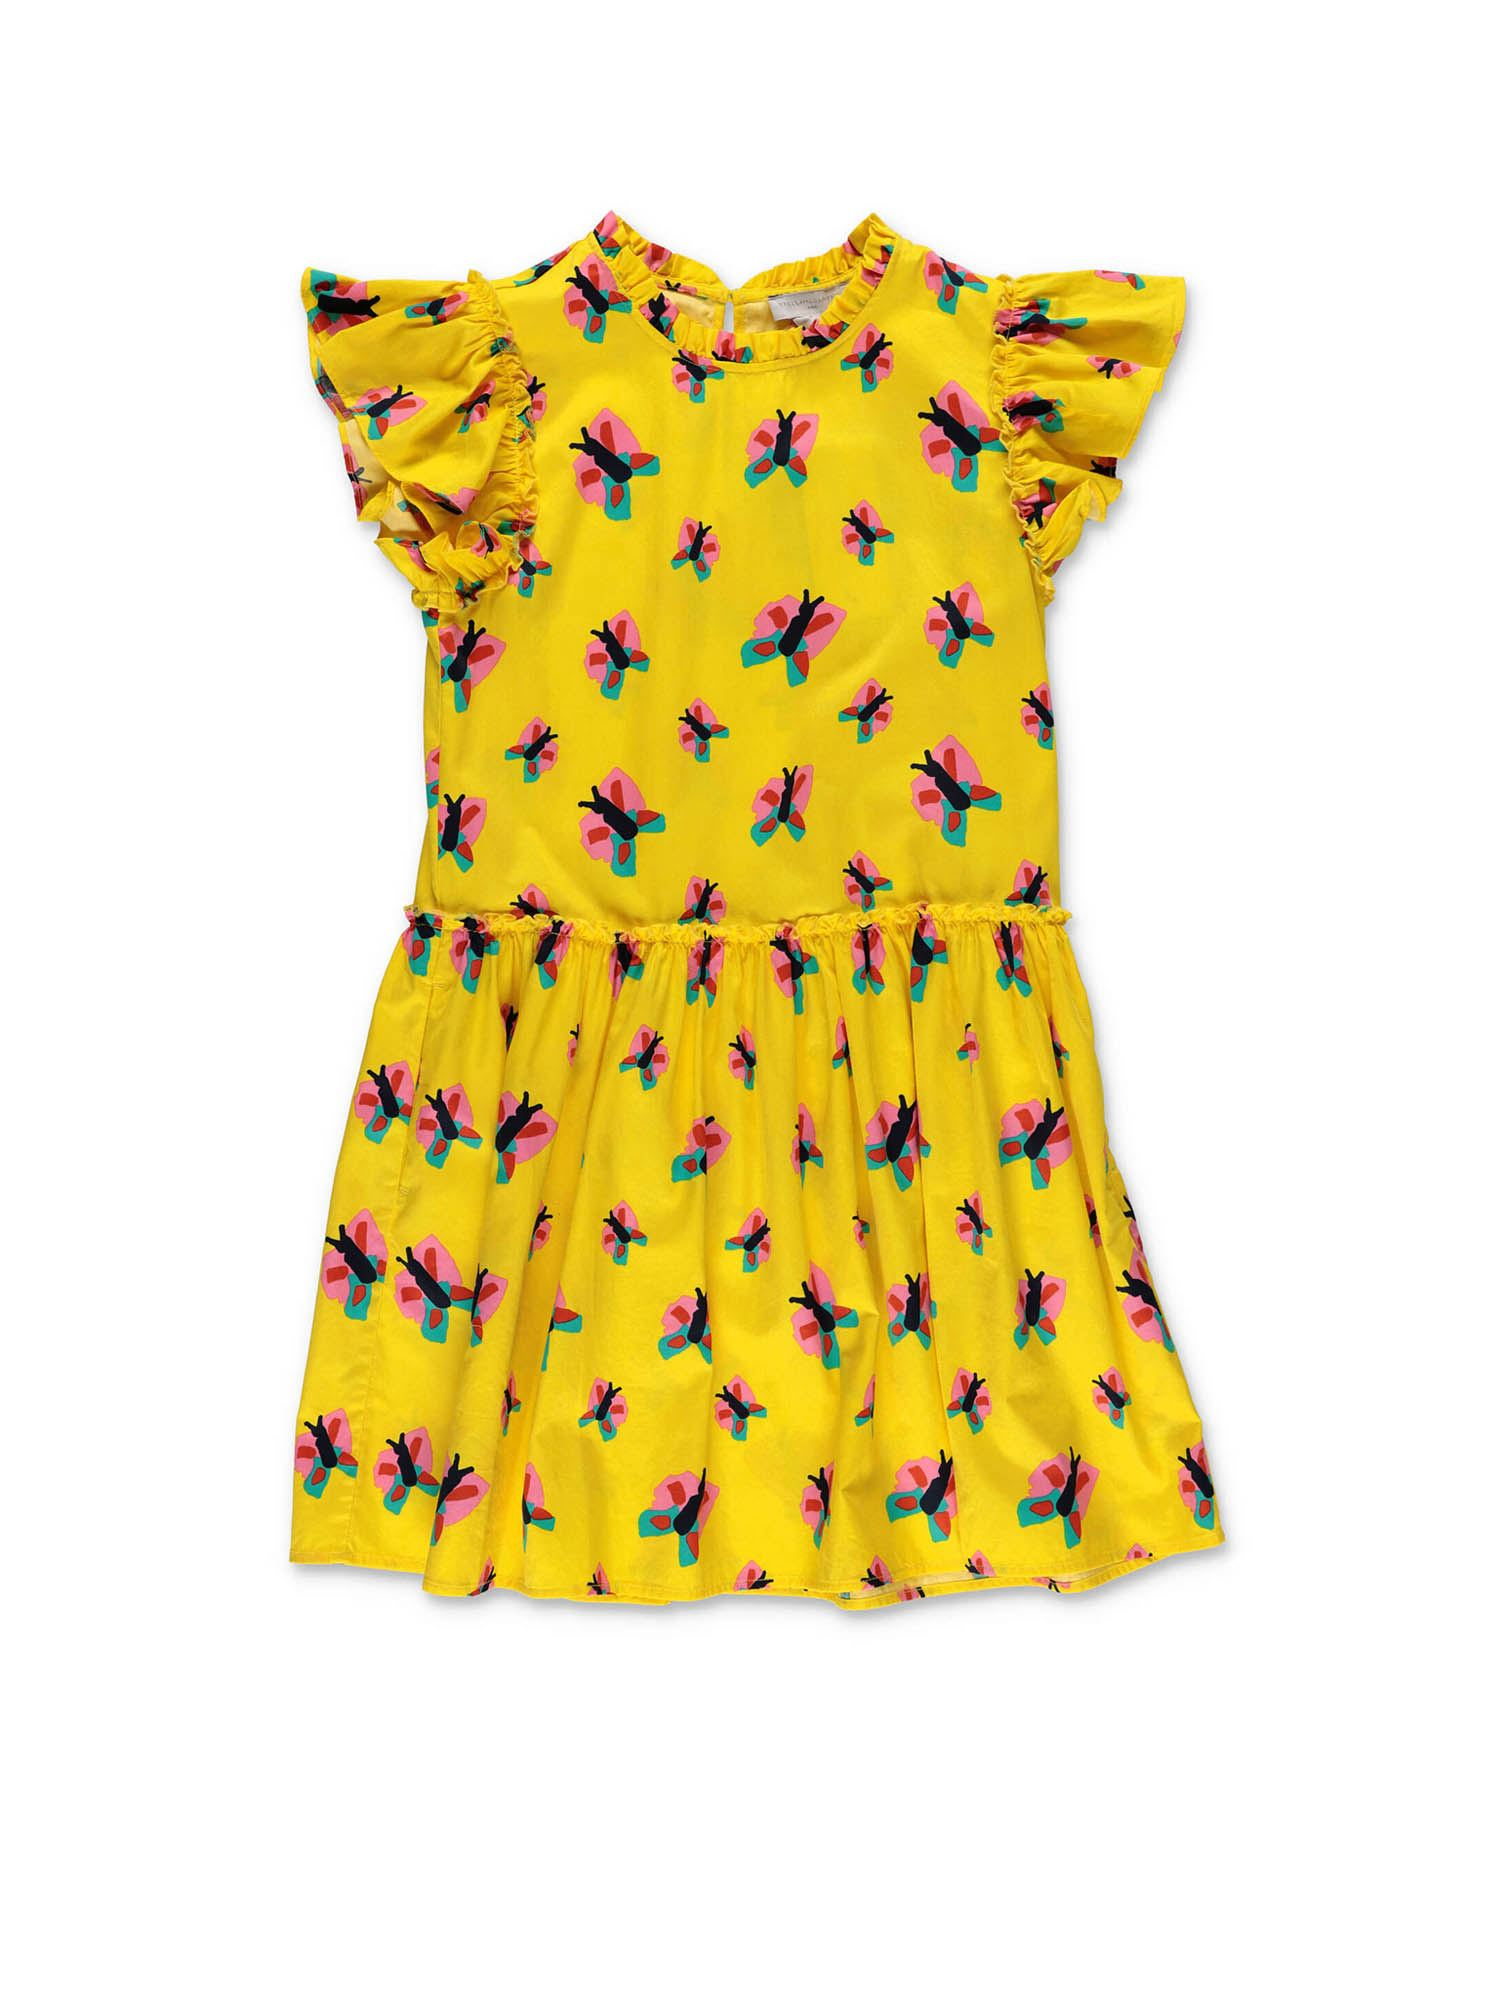 Stella Mccartney BUTTERFLY DRESS IN YELLOW